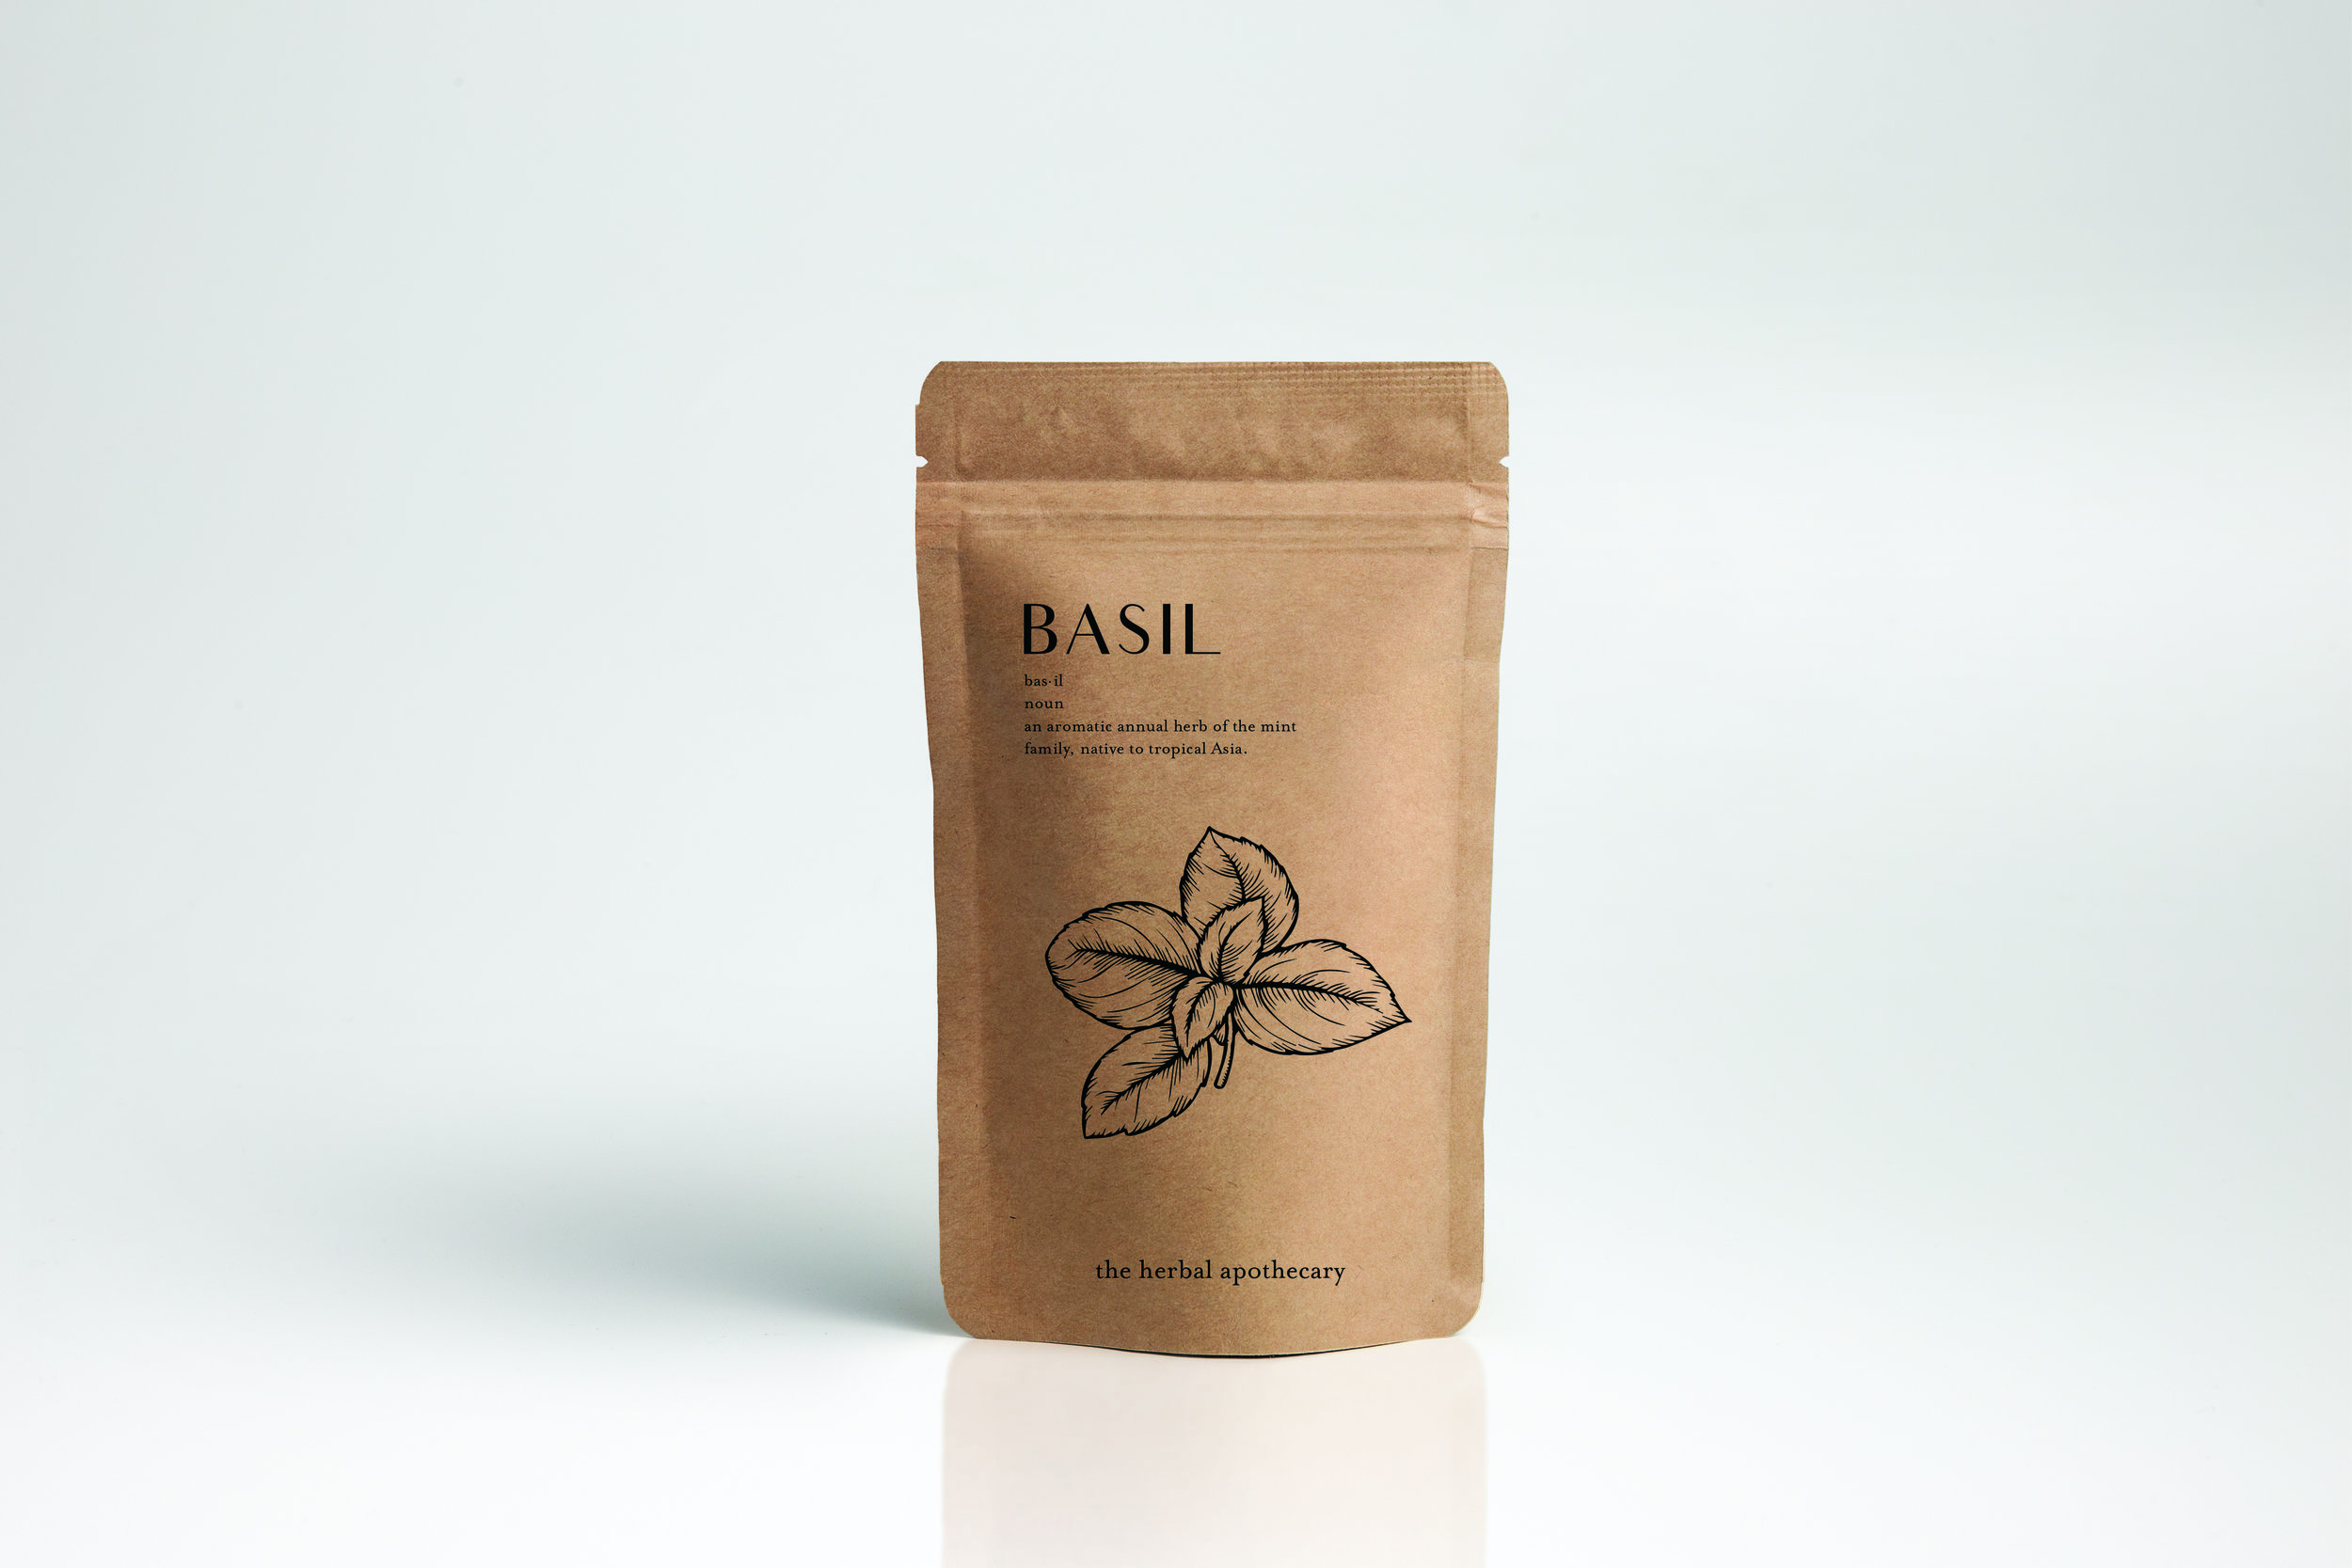 Basil pre-packaged herb pouch